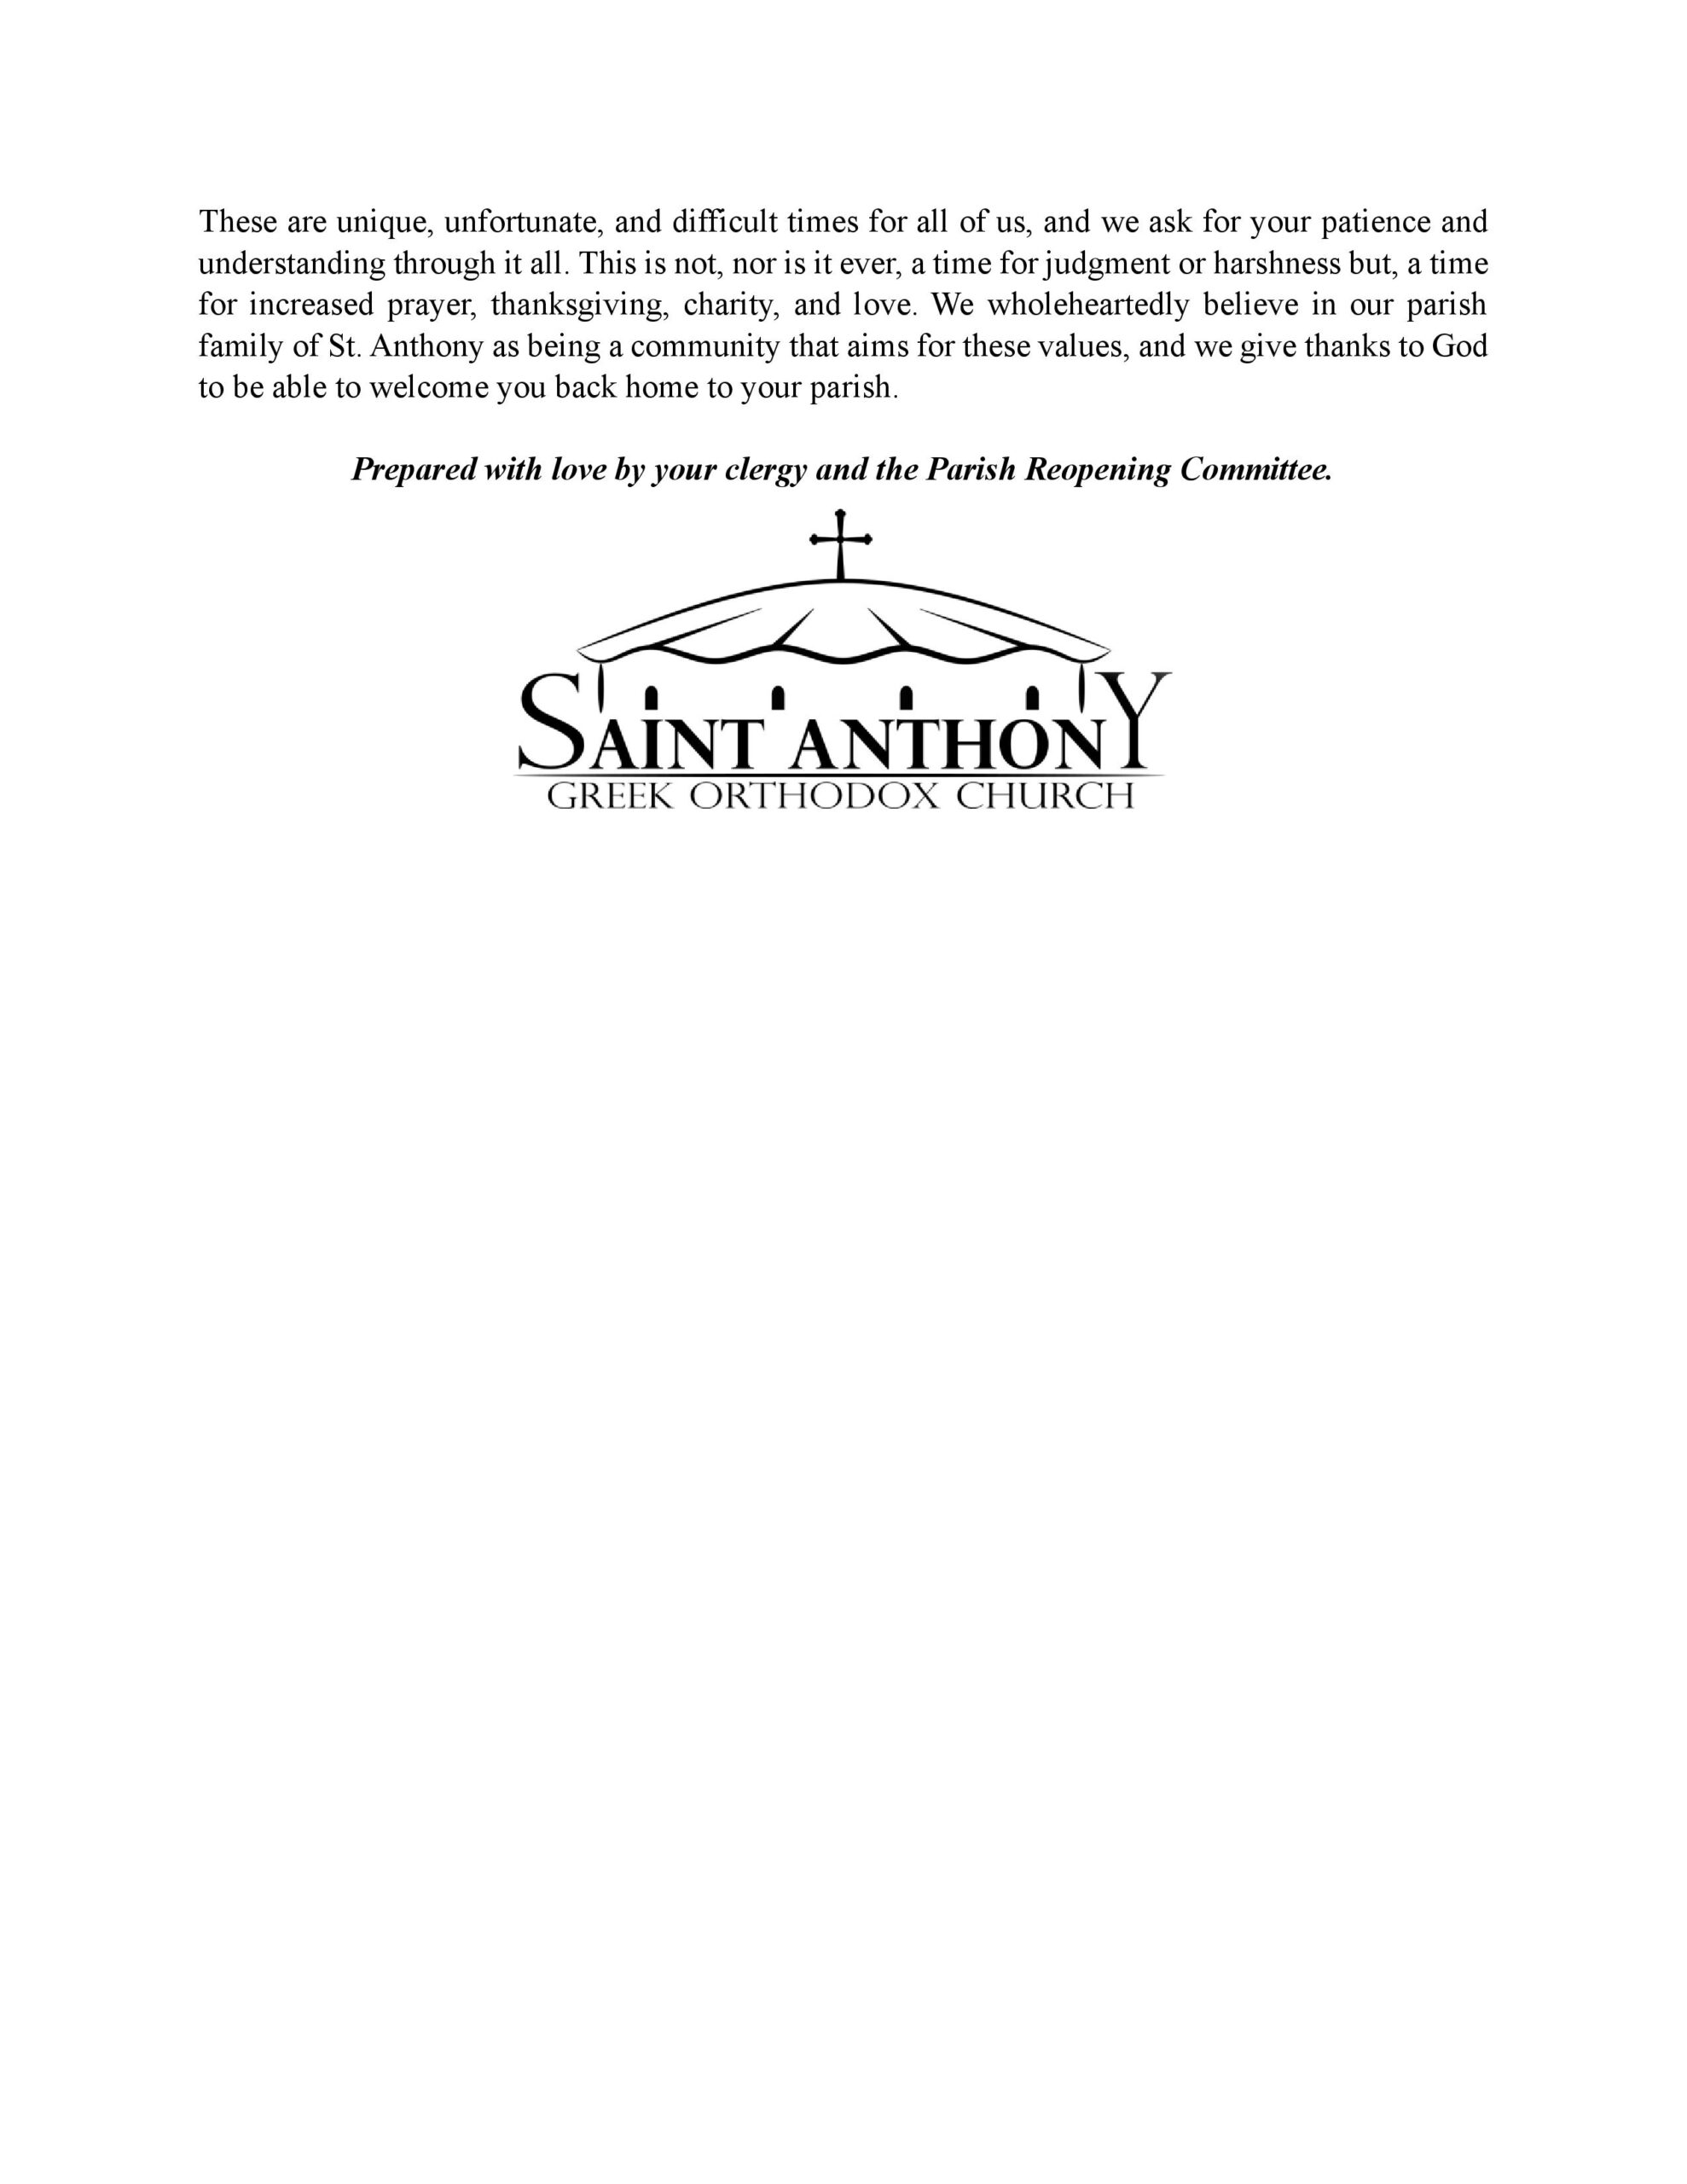 reopening letter edited 6.11.20-page-004